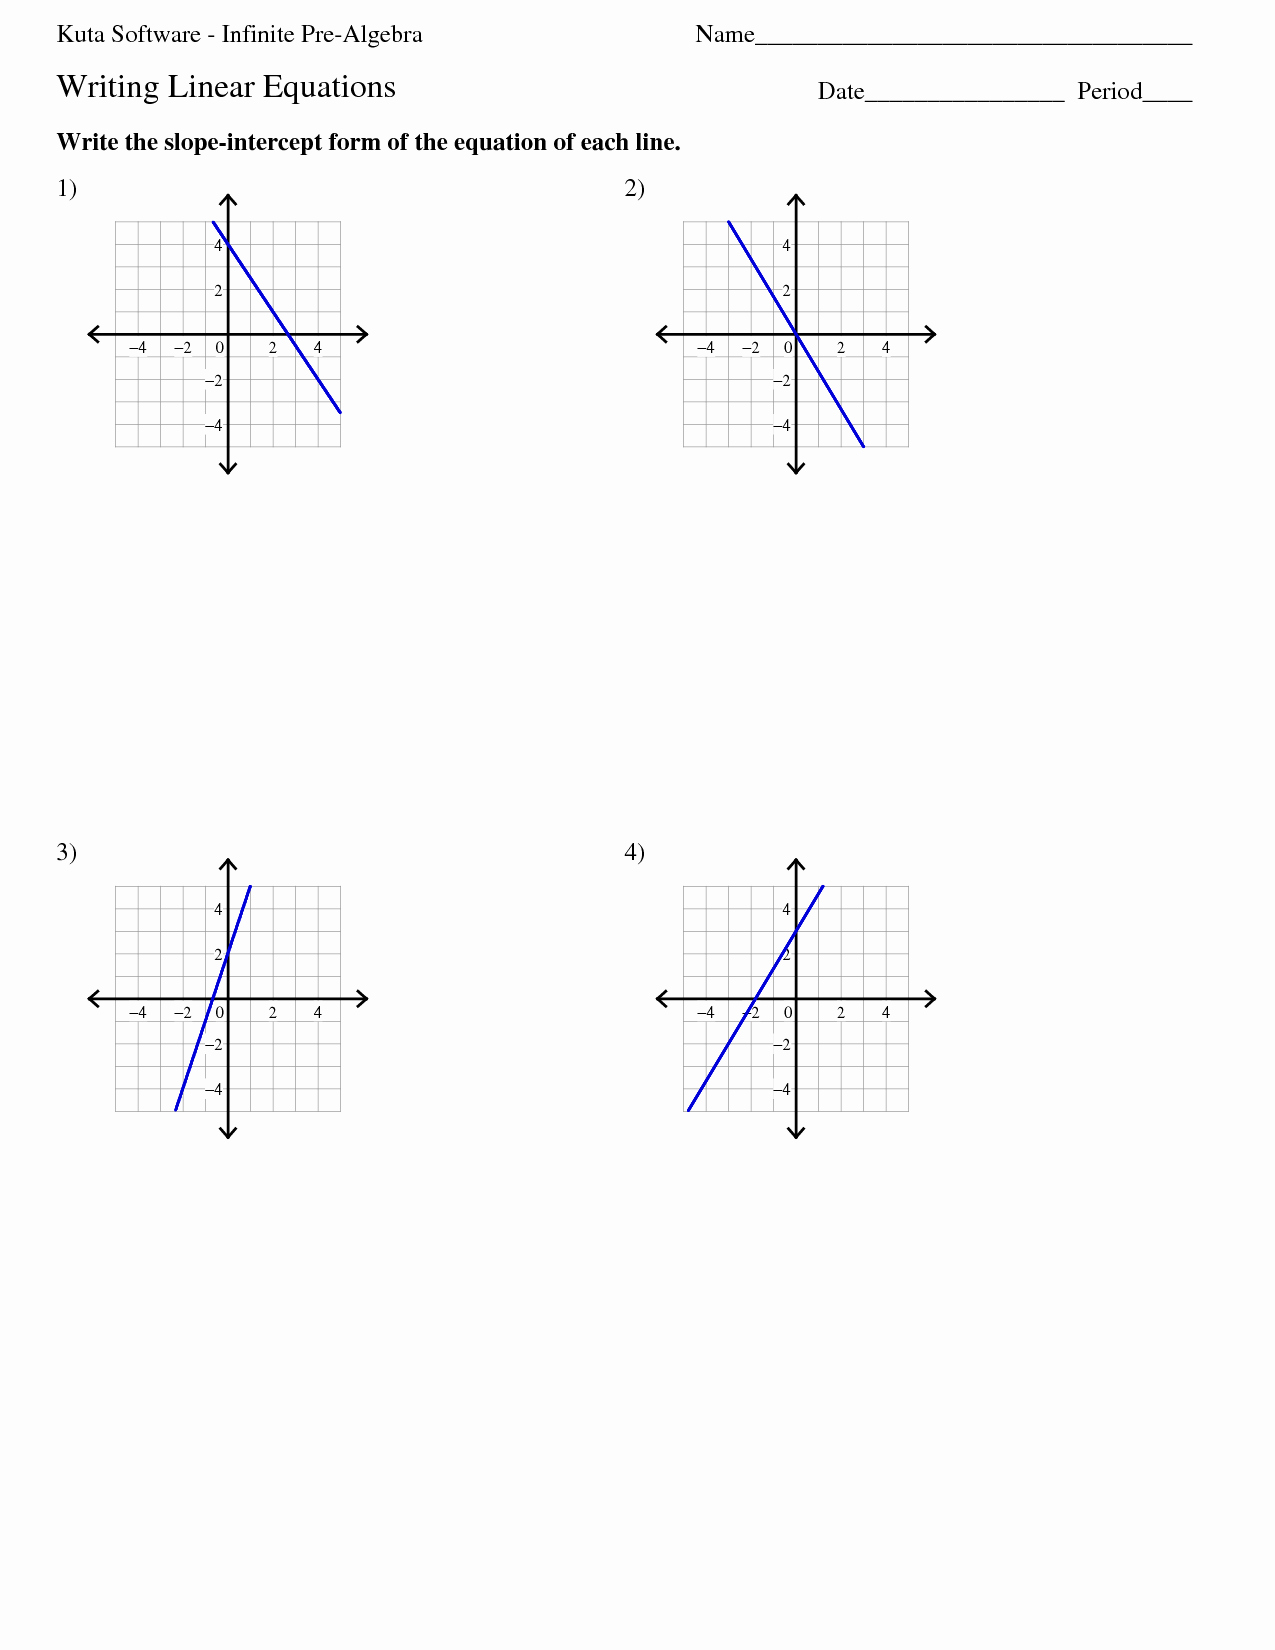 50 Writing Linear Equations Worksheet Answers